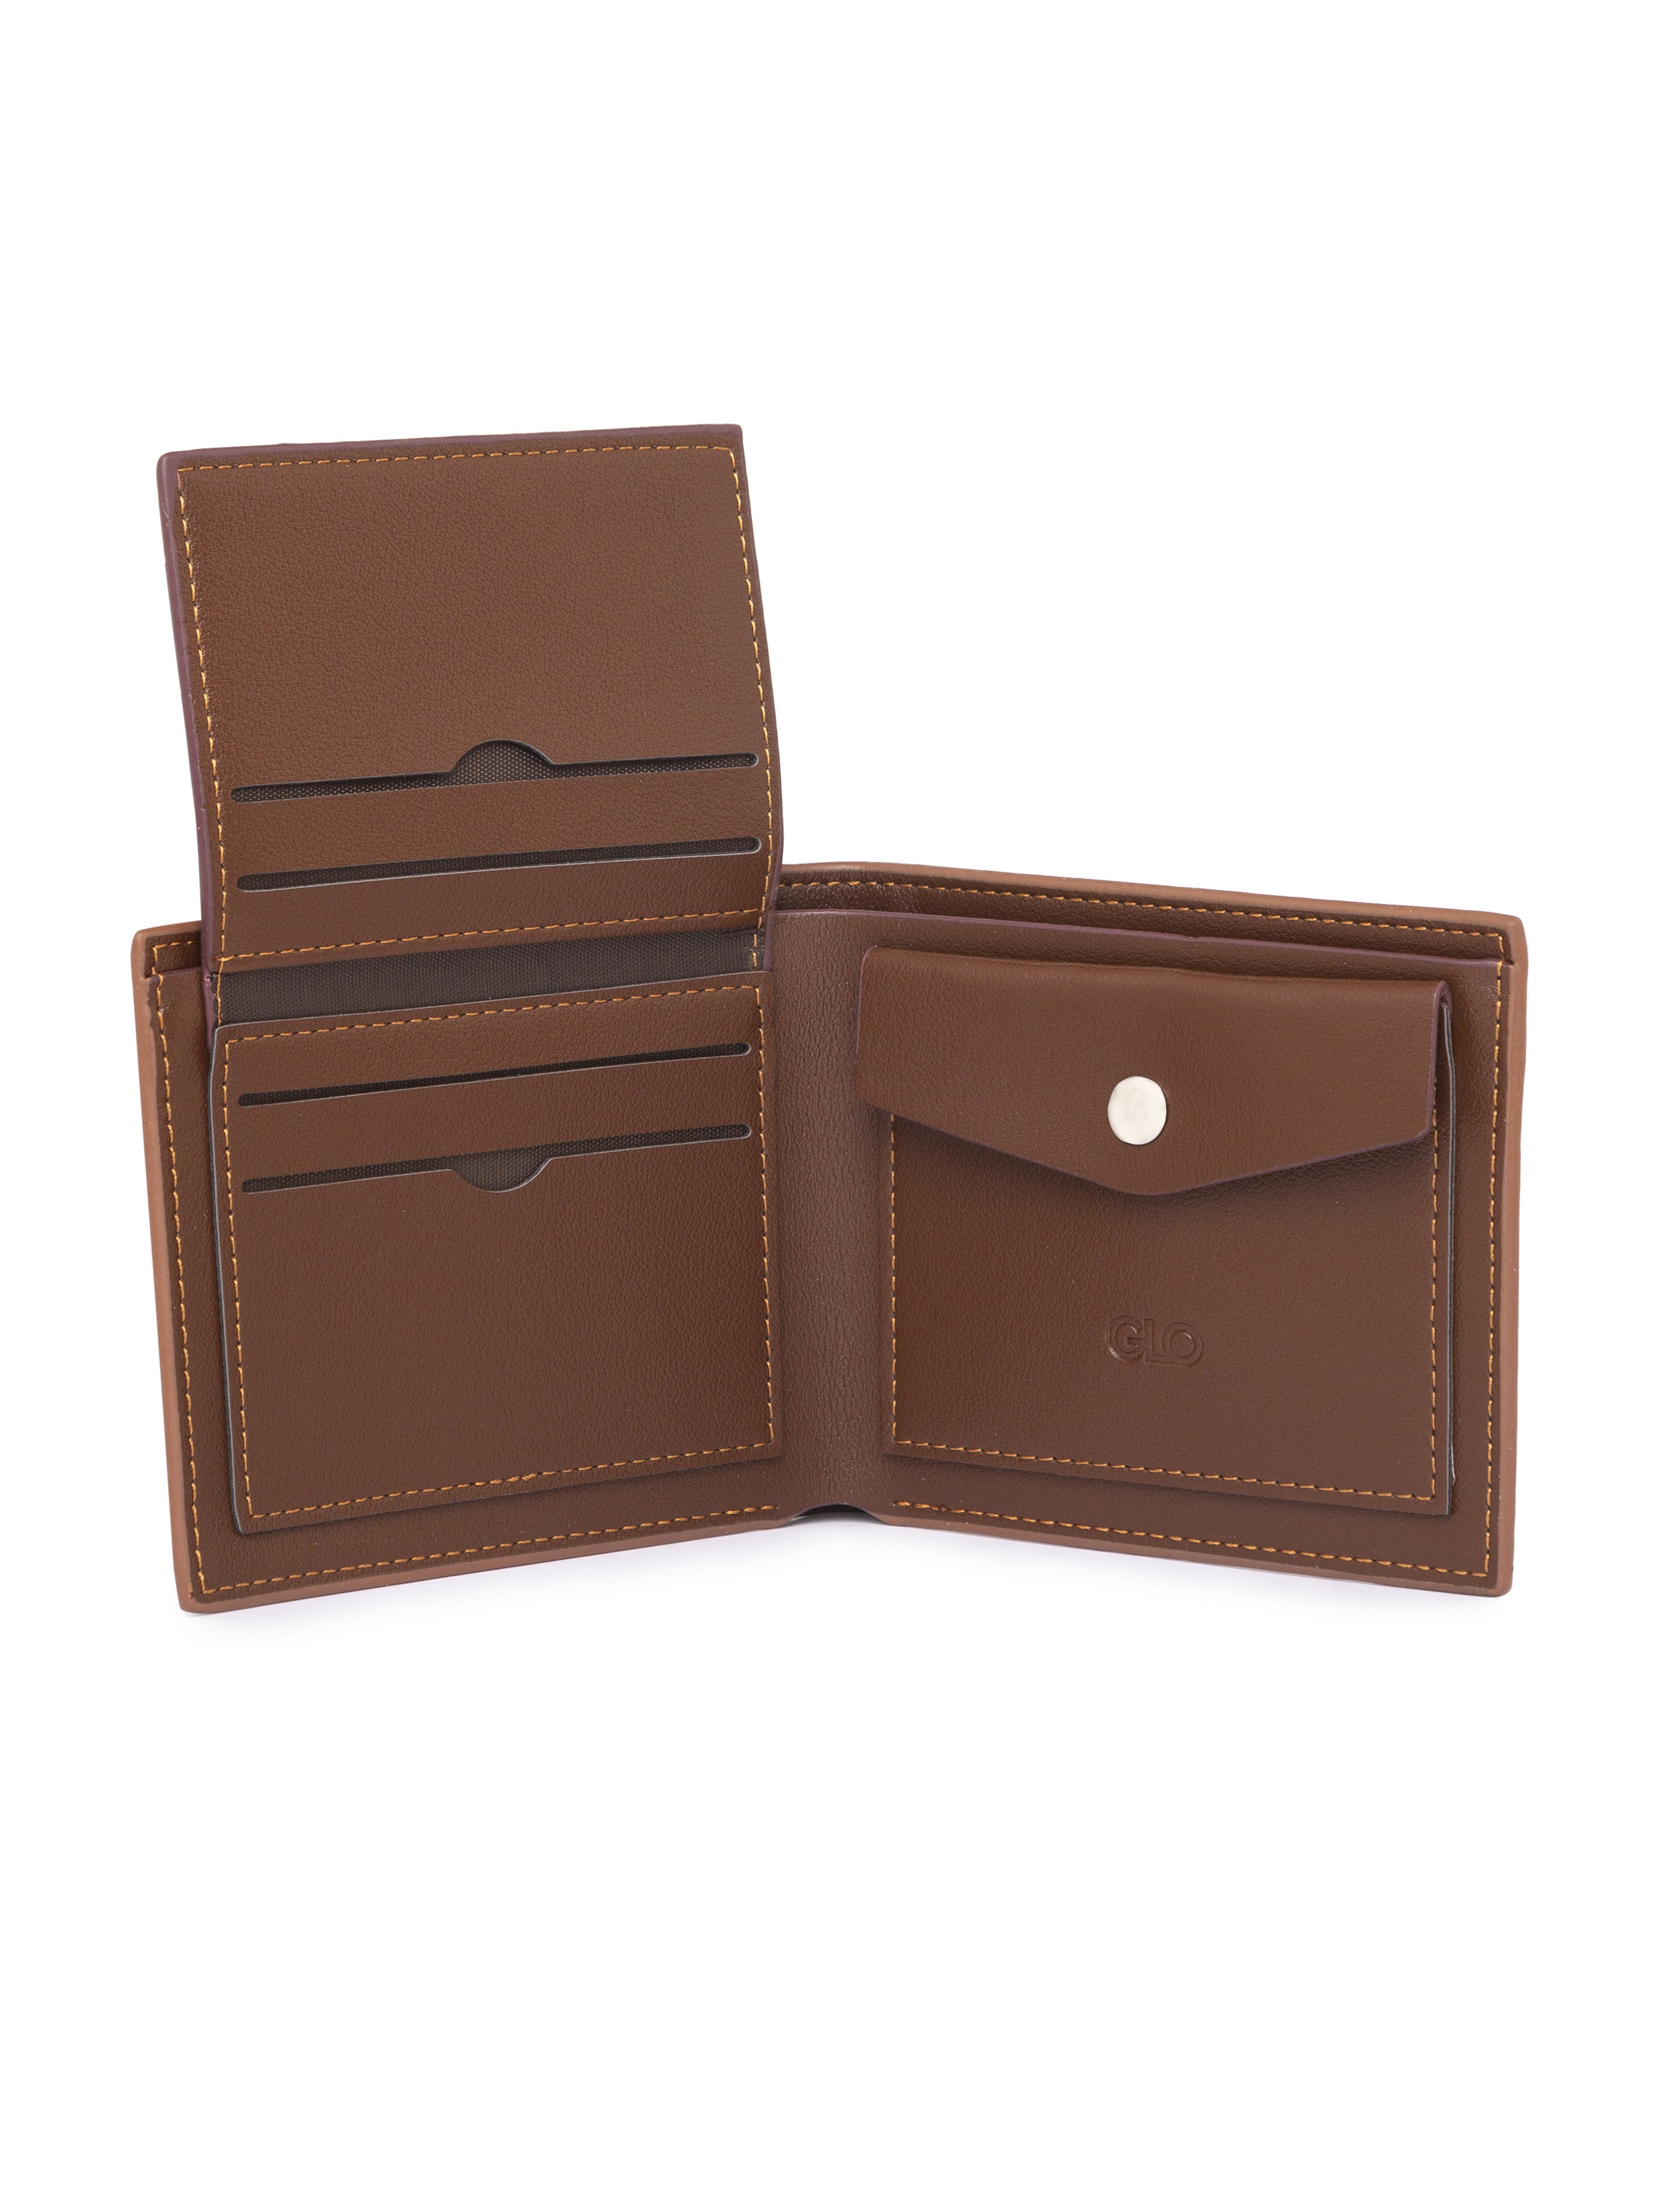 Solid Tan Wallet-5